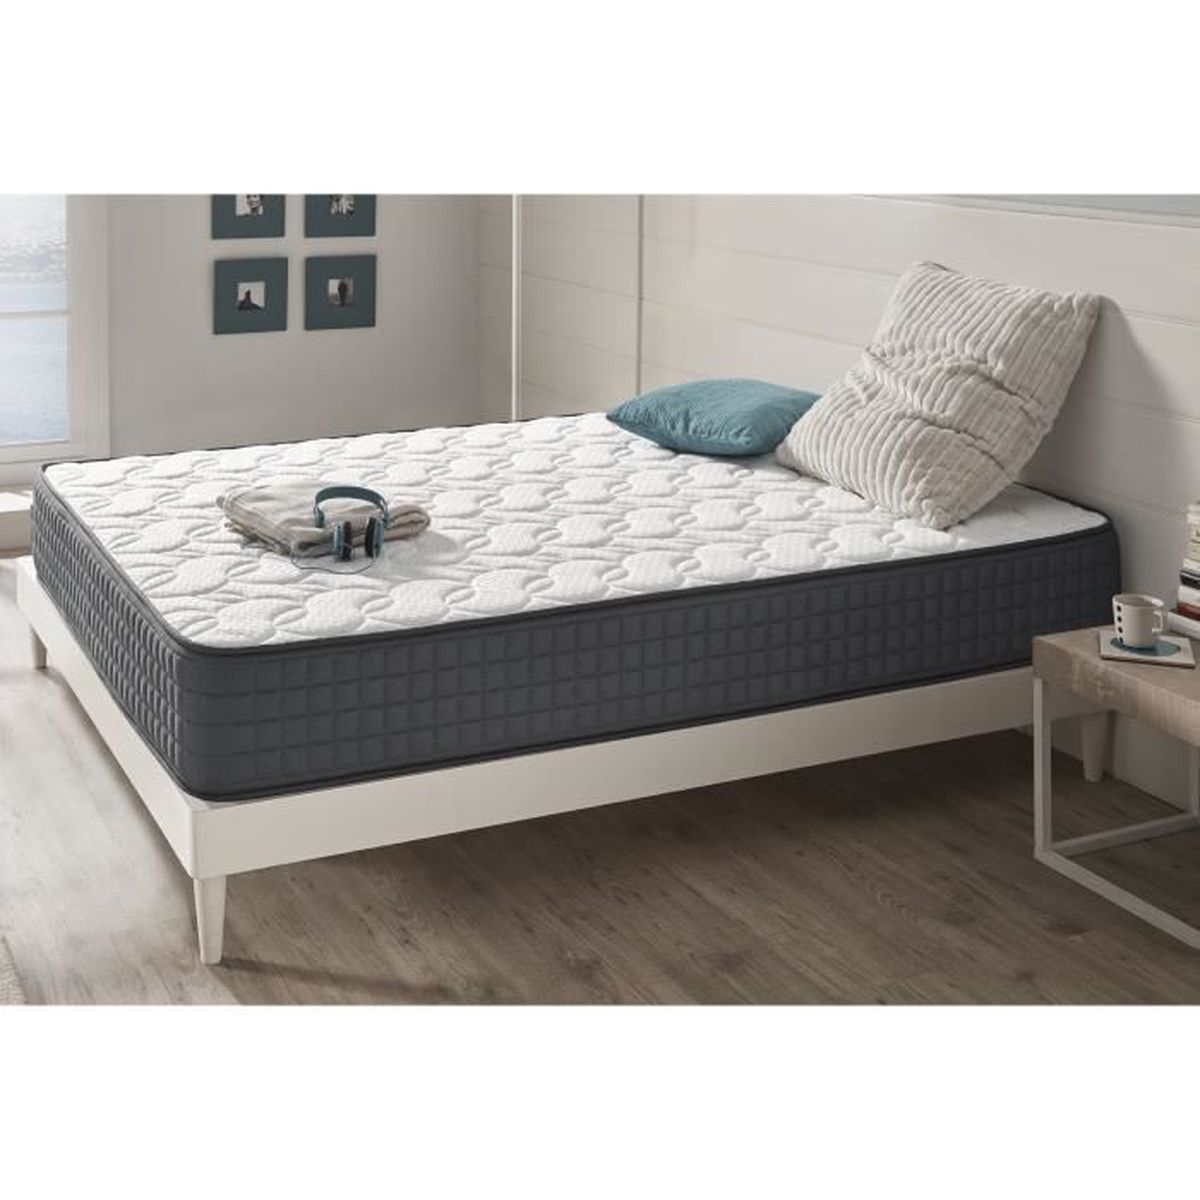 matelas maxi graphene 120x200 cm m moire de forme blue latex tissu dermophile anti stress. Black Bedroom Furniture Sets. Home Design Ideas